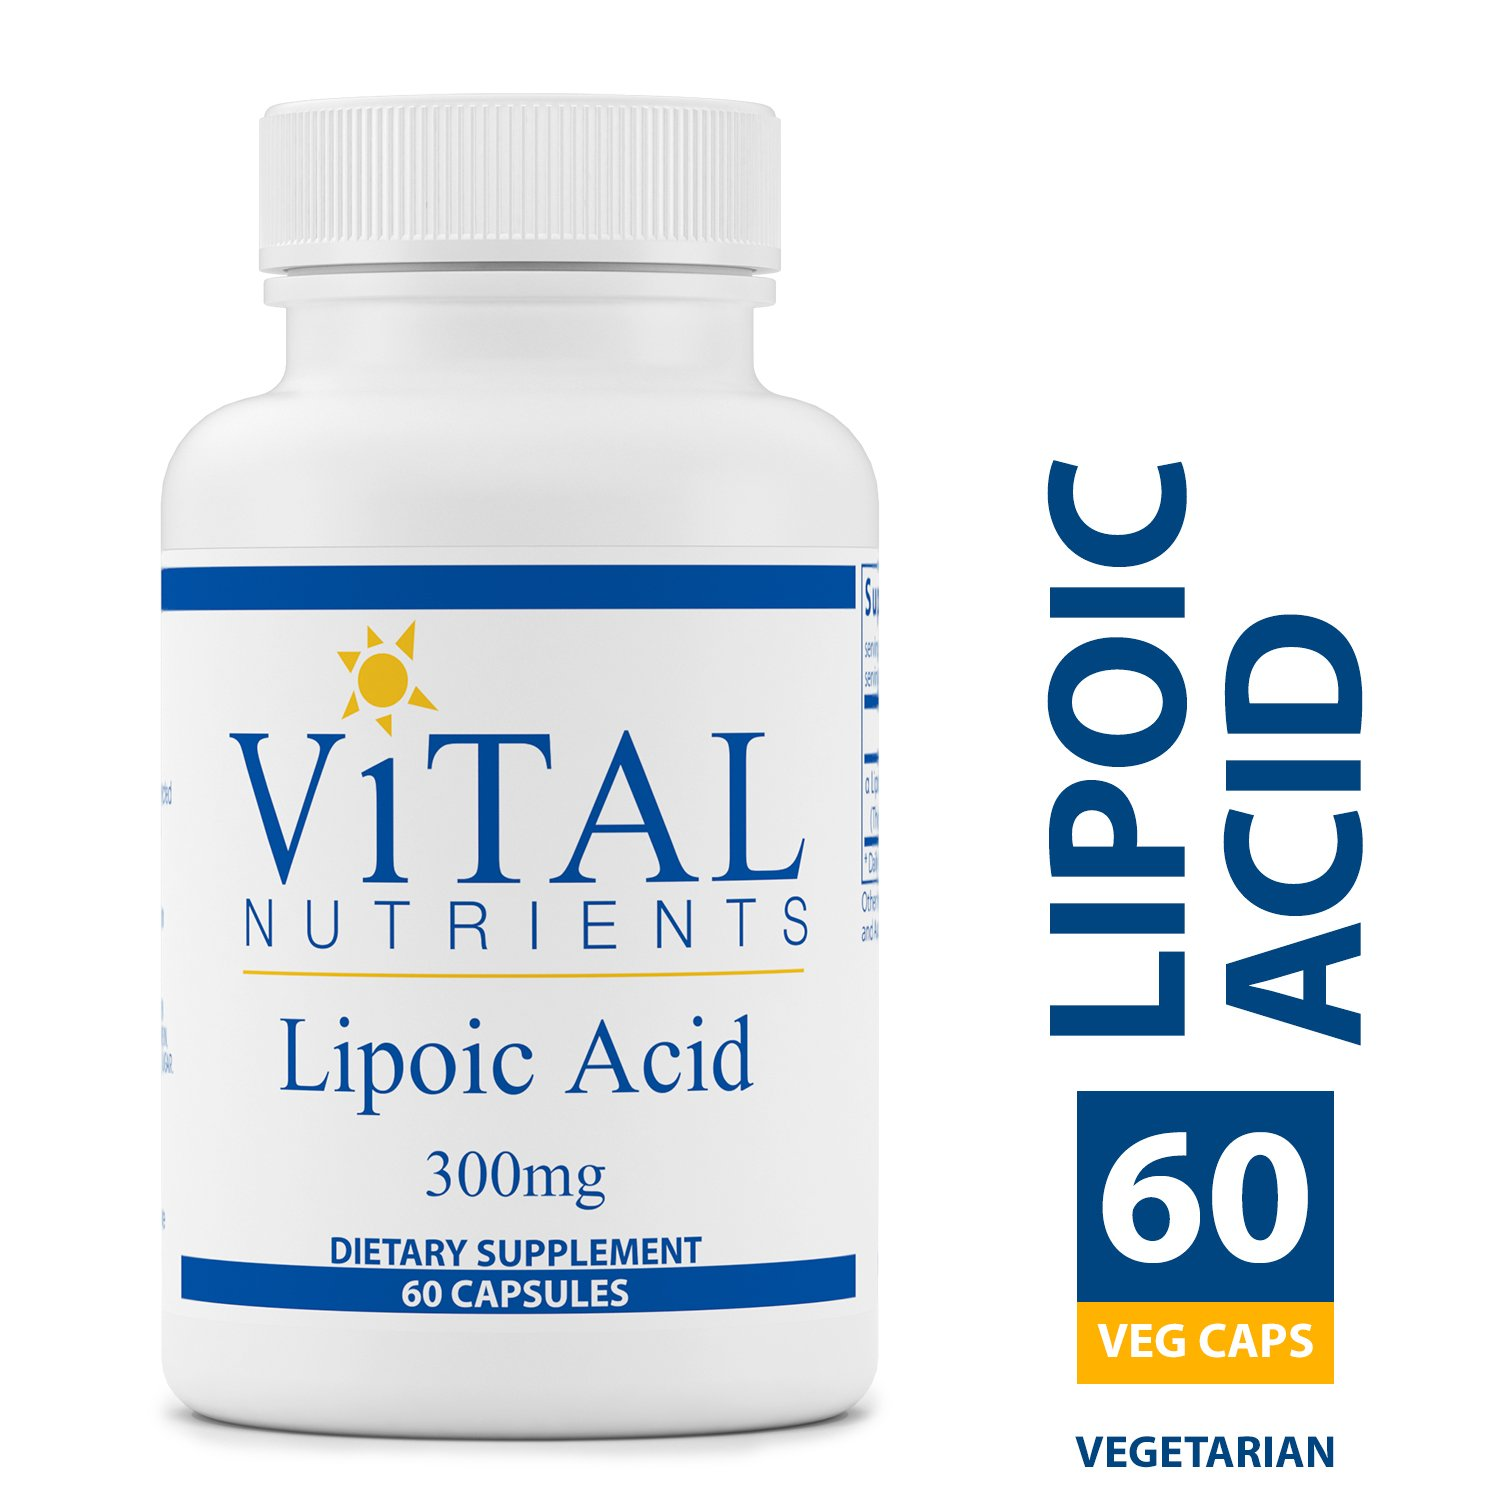 Vital Nutrients - Lipoic Acid 300 mg - Multi-Purpose Nutrient and Powerful Antioxidant - Blood Sugar Support - 60 Vegetarian Capsules per Bottle